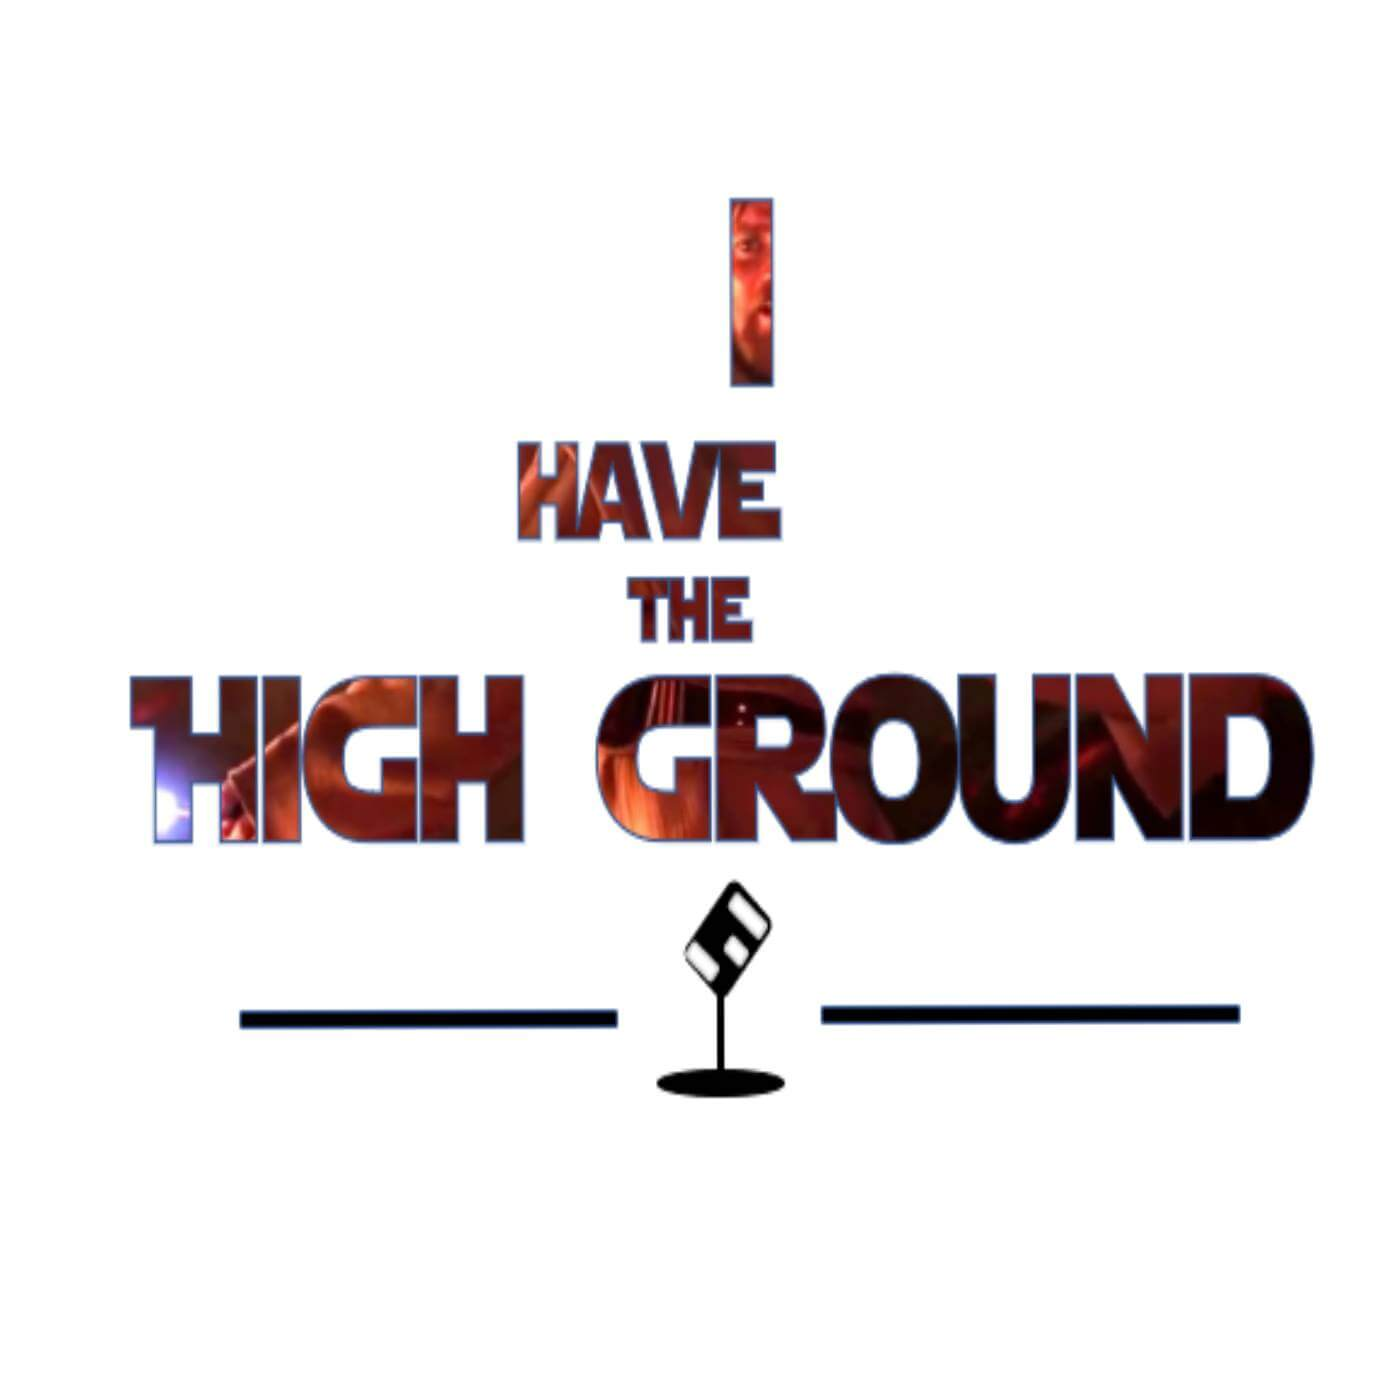 I Have the High Ground Episode 03: Cringe Factor